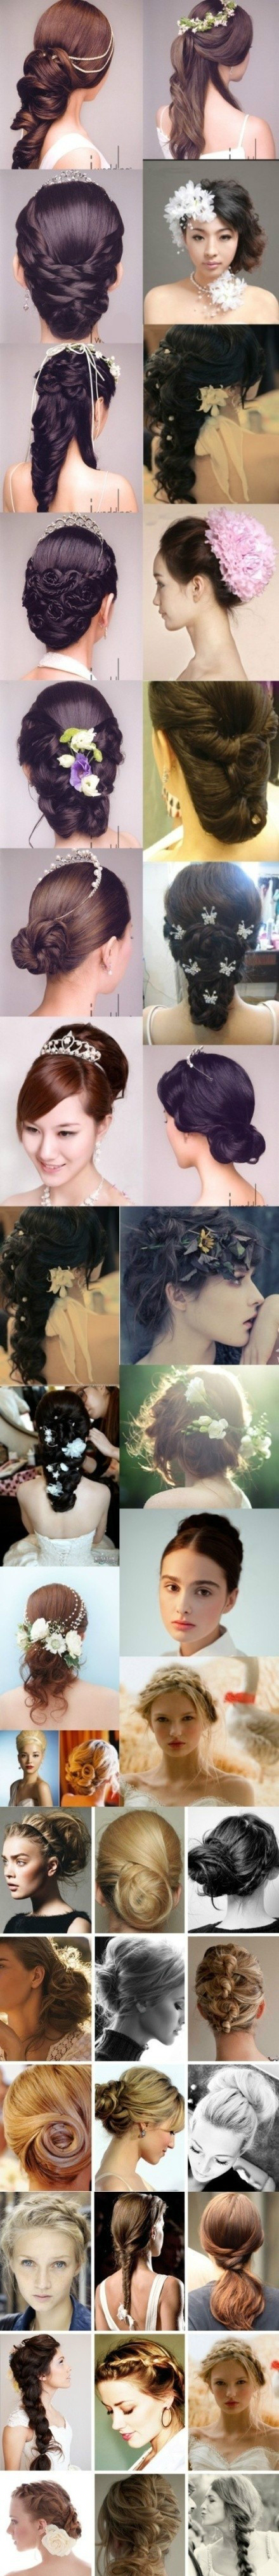 Hair style hair pinterest hair style homecoming and stylists